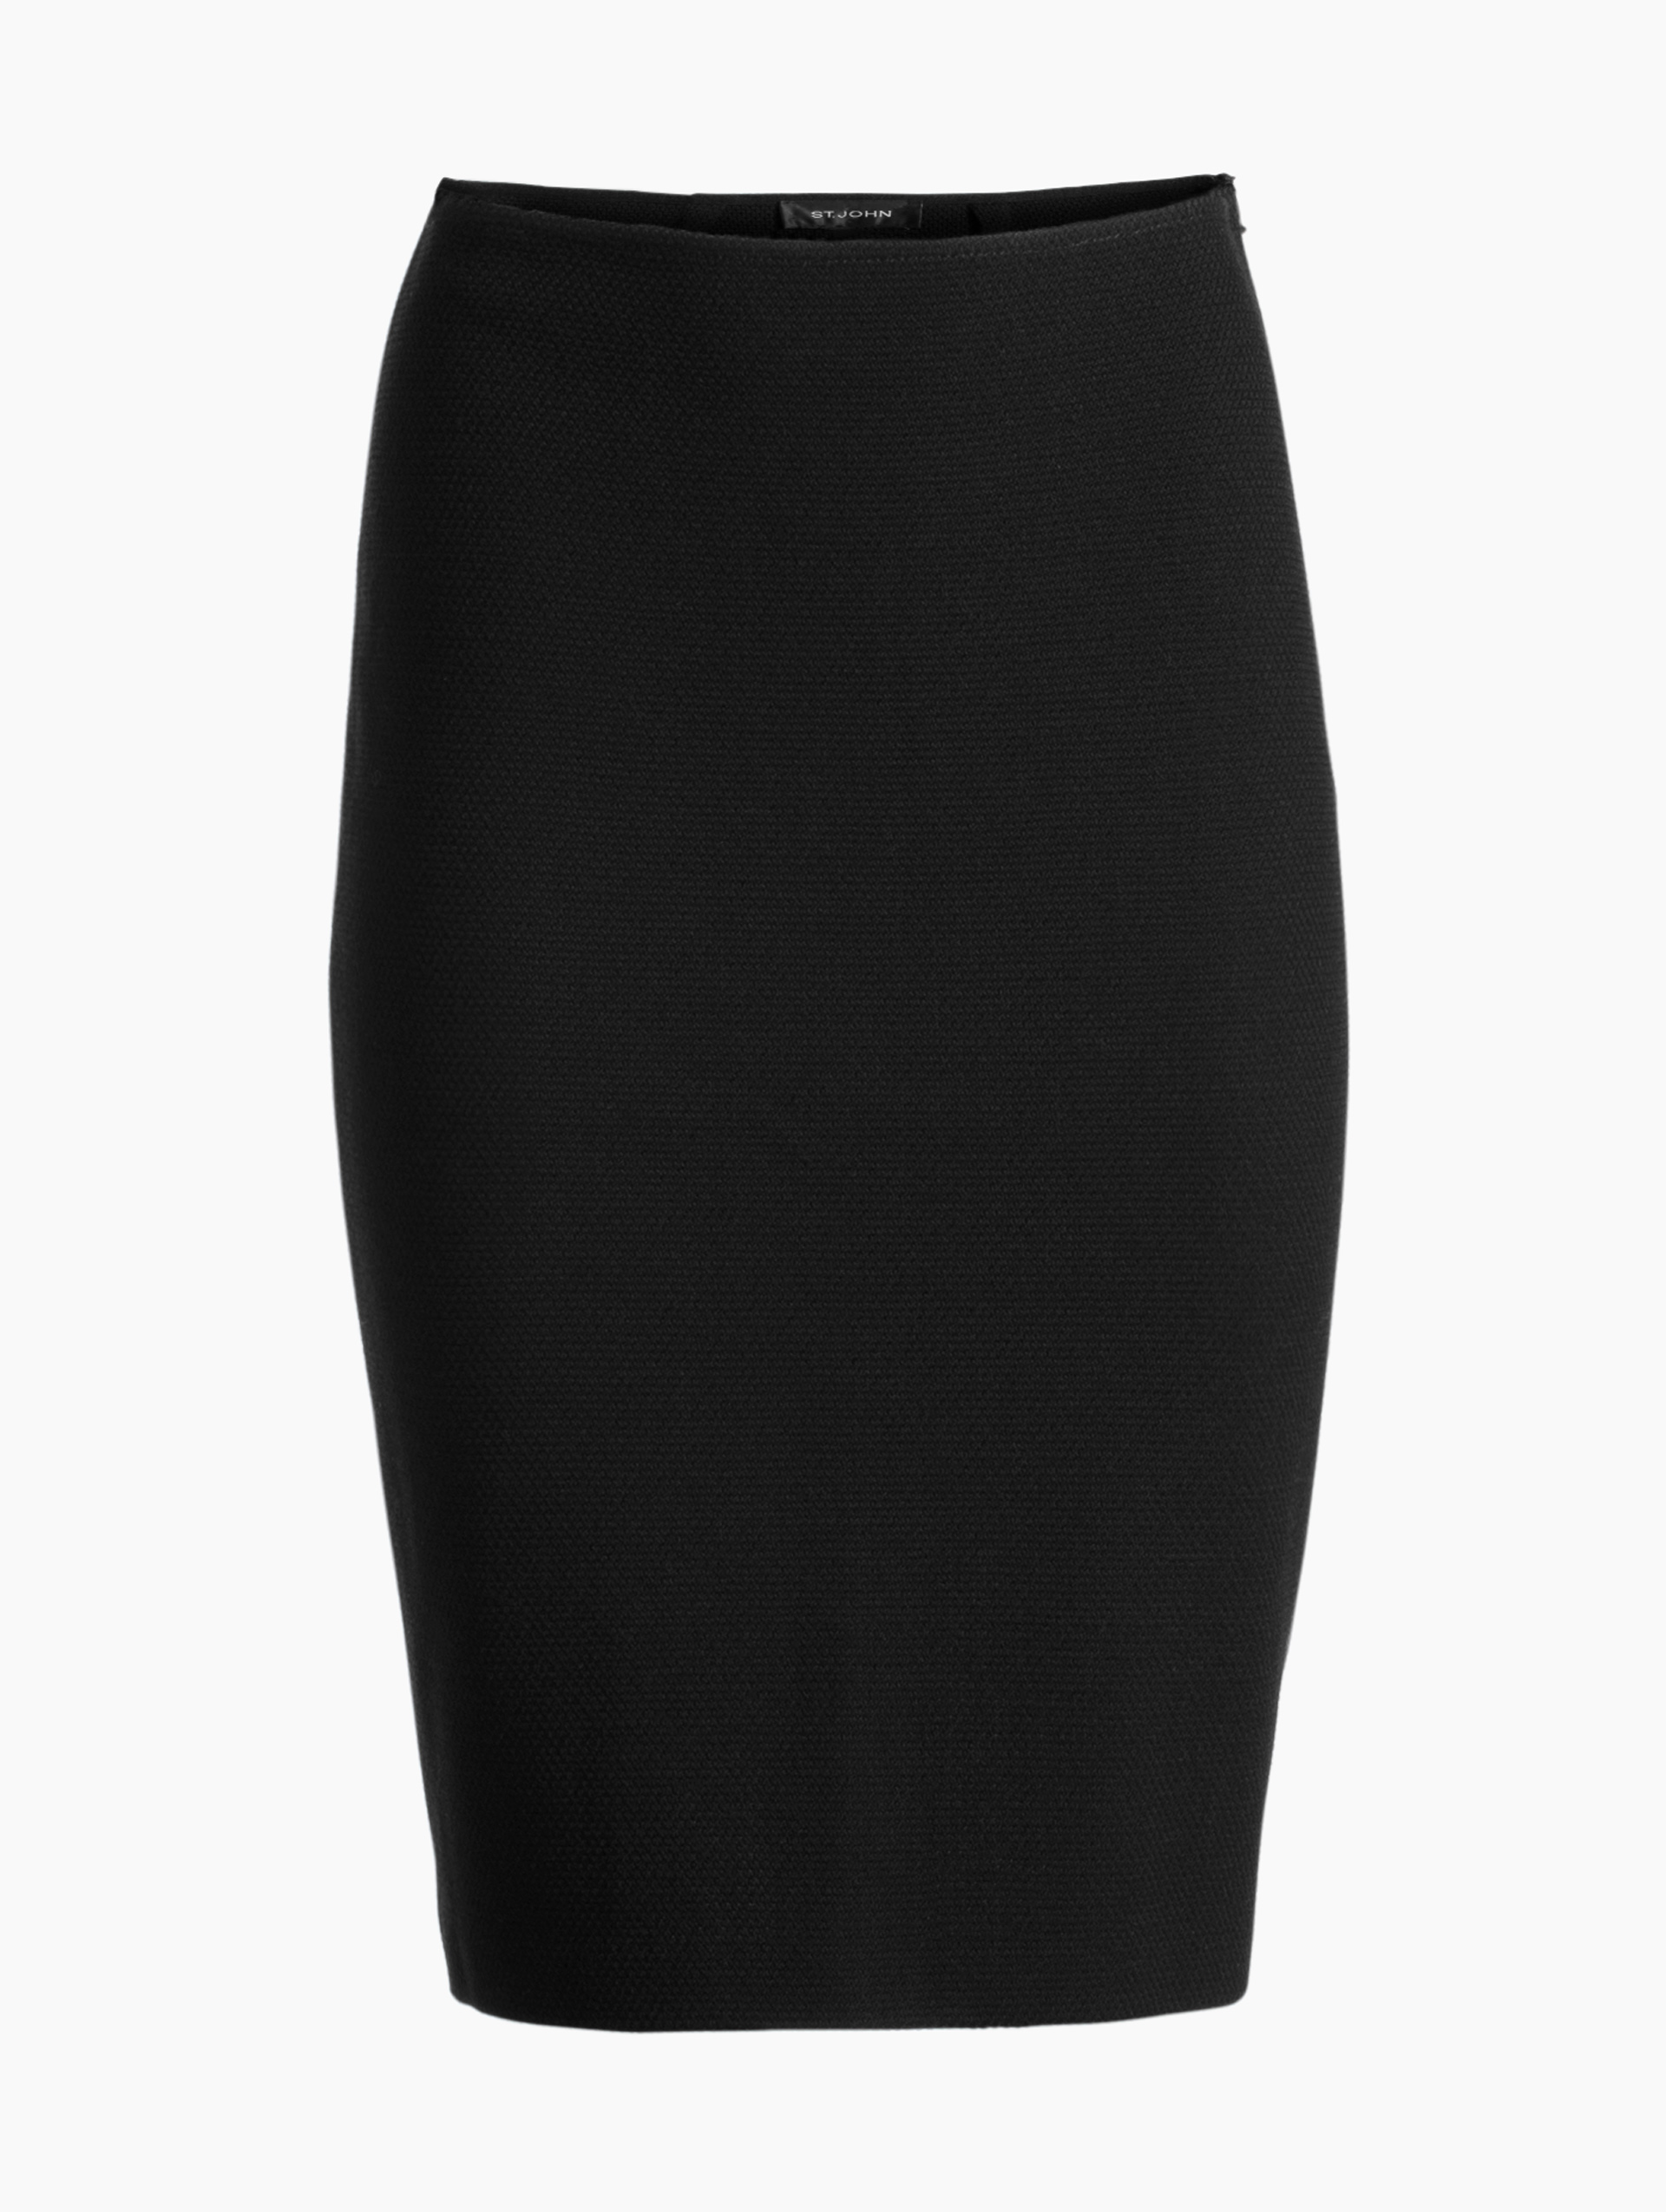 Pencil Skirt 14 Fine Craftsmanship Women's Clothing Clothing, Shoes & Accessories